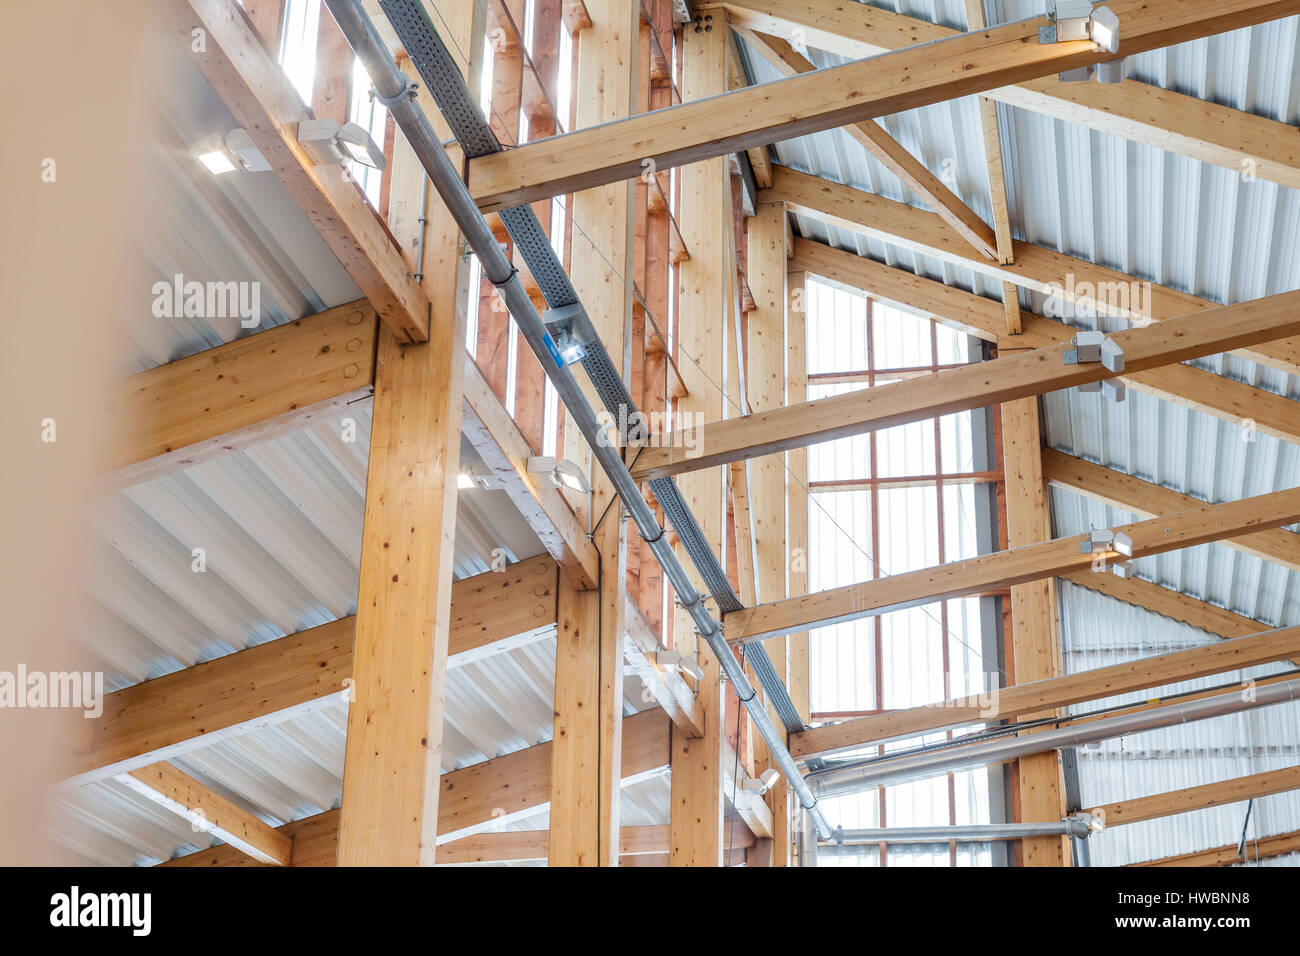 Roof Rafters In The New Construction Of A Wooden Building Or House